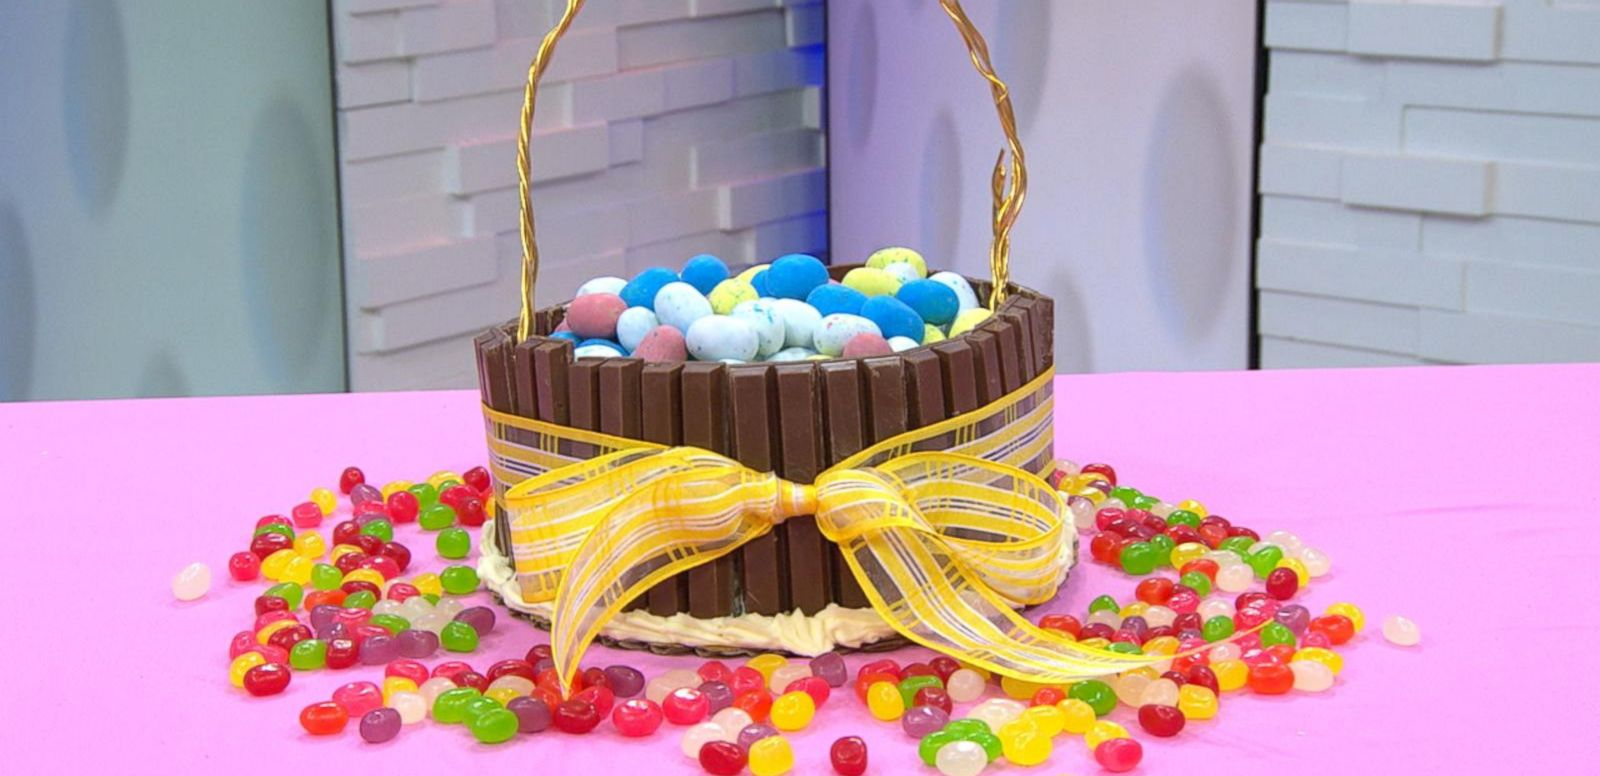 VIDEO: DIY Tips for Easy and Fun Easter Activities With Your Family